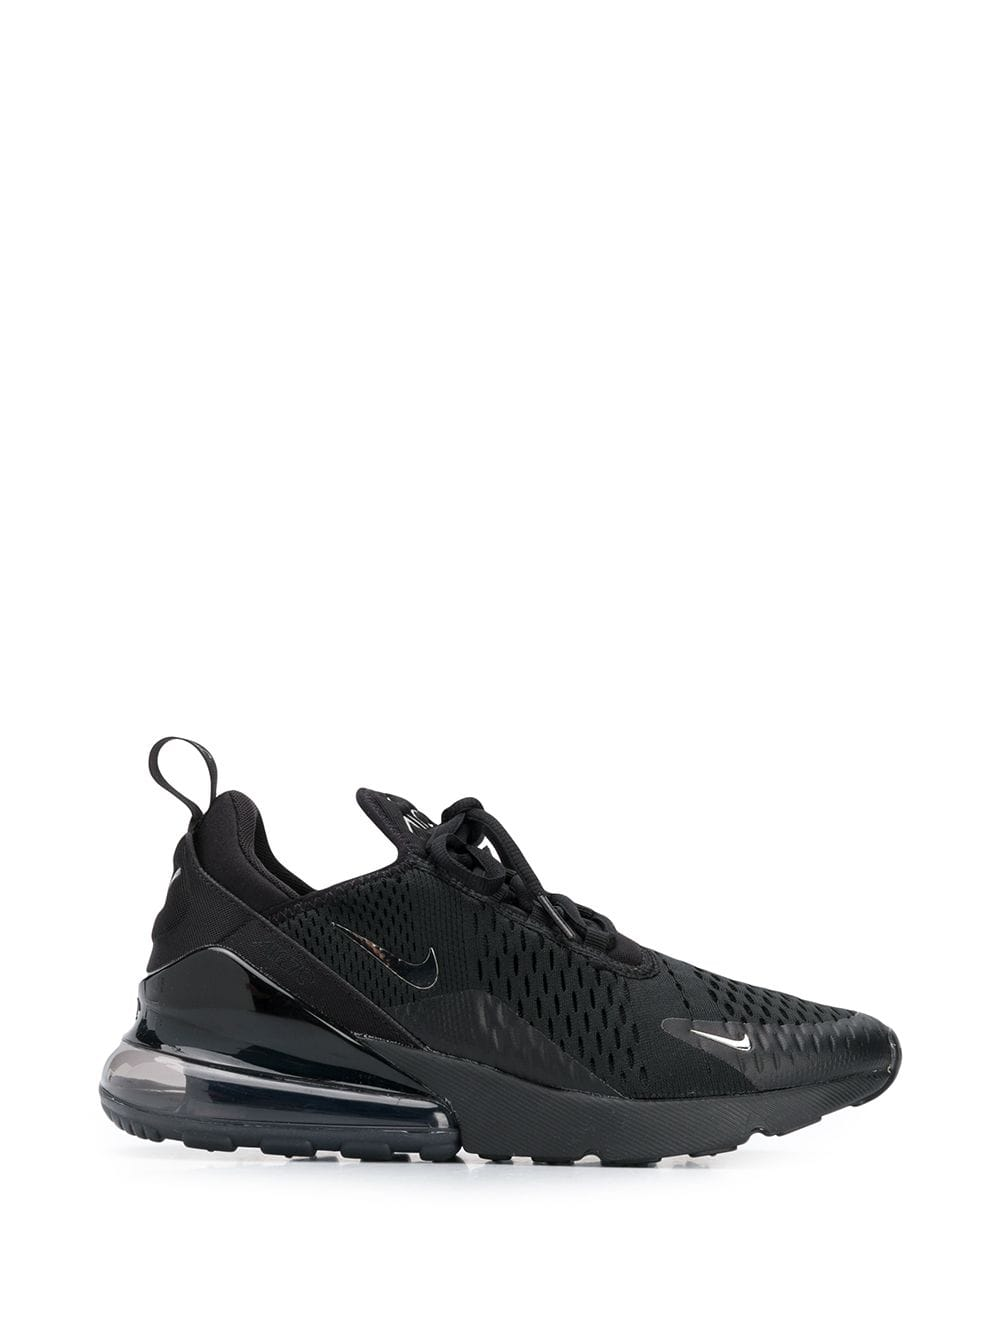 Nike Air Max 270 sneakers Black | Products in 2019 | Air